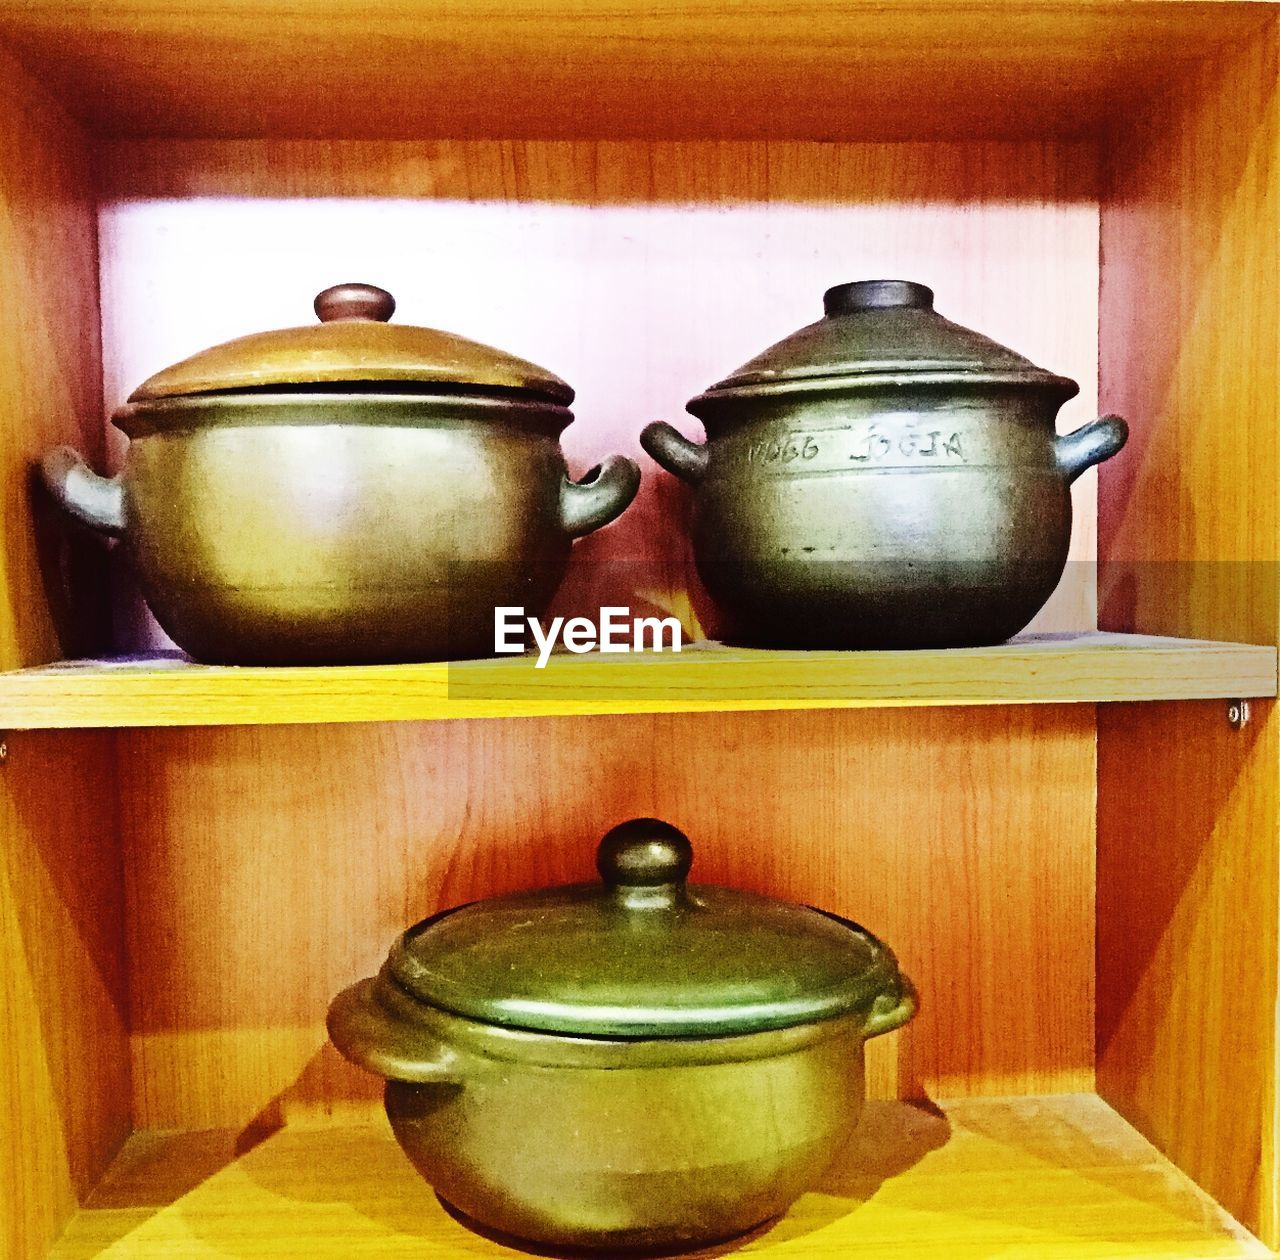 indoors, table, shelf, no people, domestic kitchen, wood - material, container, home interior, kitchen, earthenware, bowl, teapot, domestic room, old-fashioned, lid, close-up, healthy eating, day, freshness